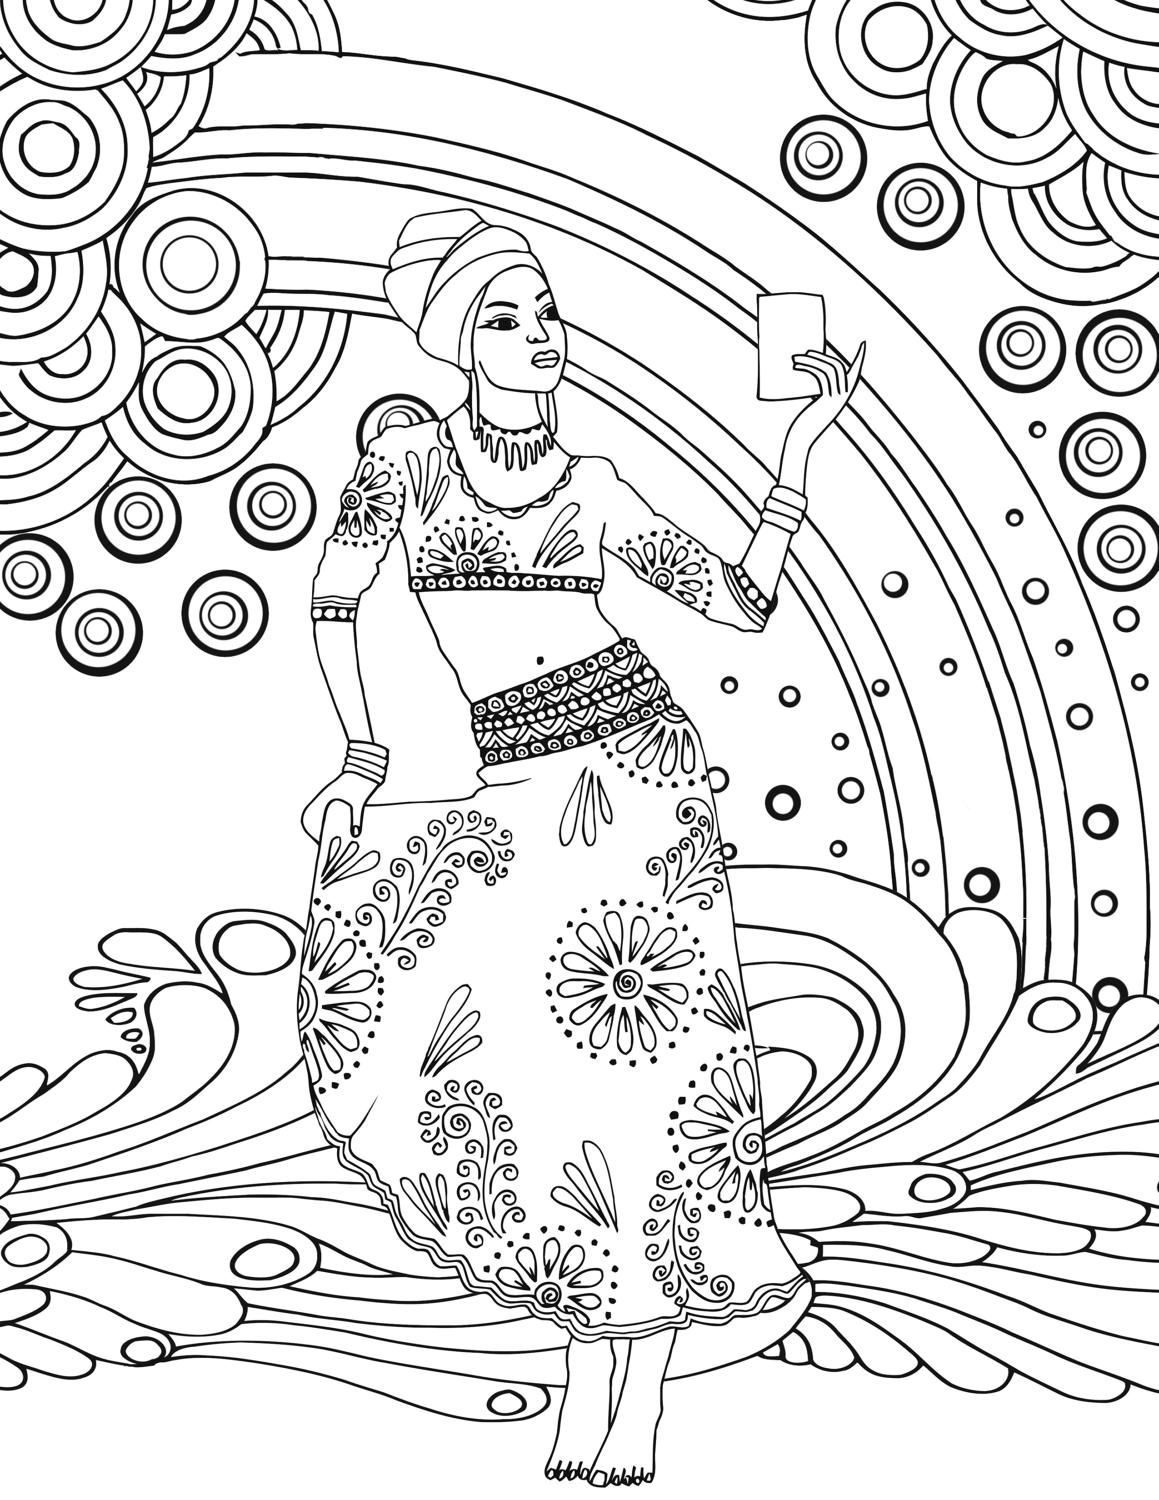 African Goddess Adult Colouring Page Printable by Kimblogsshop